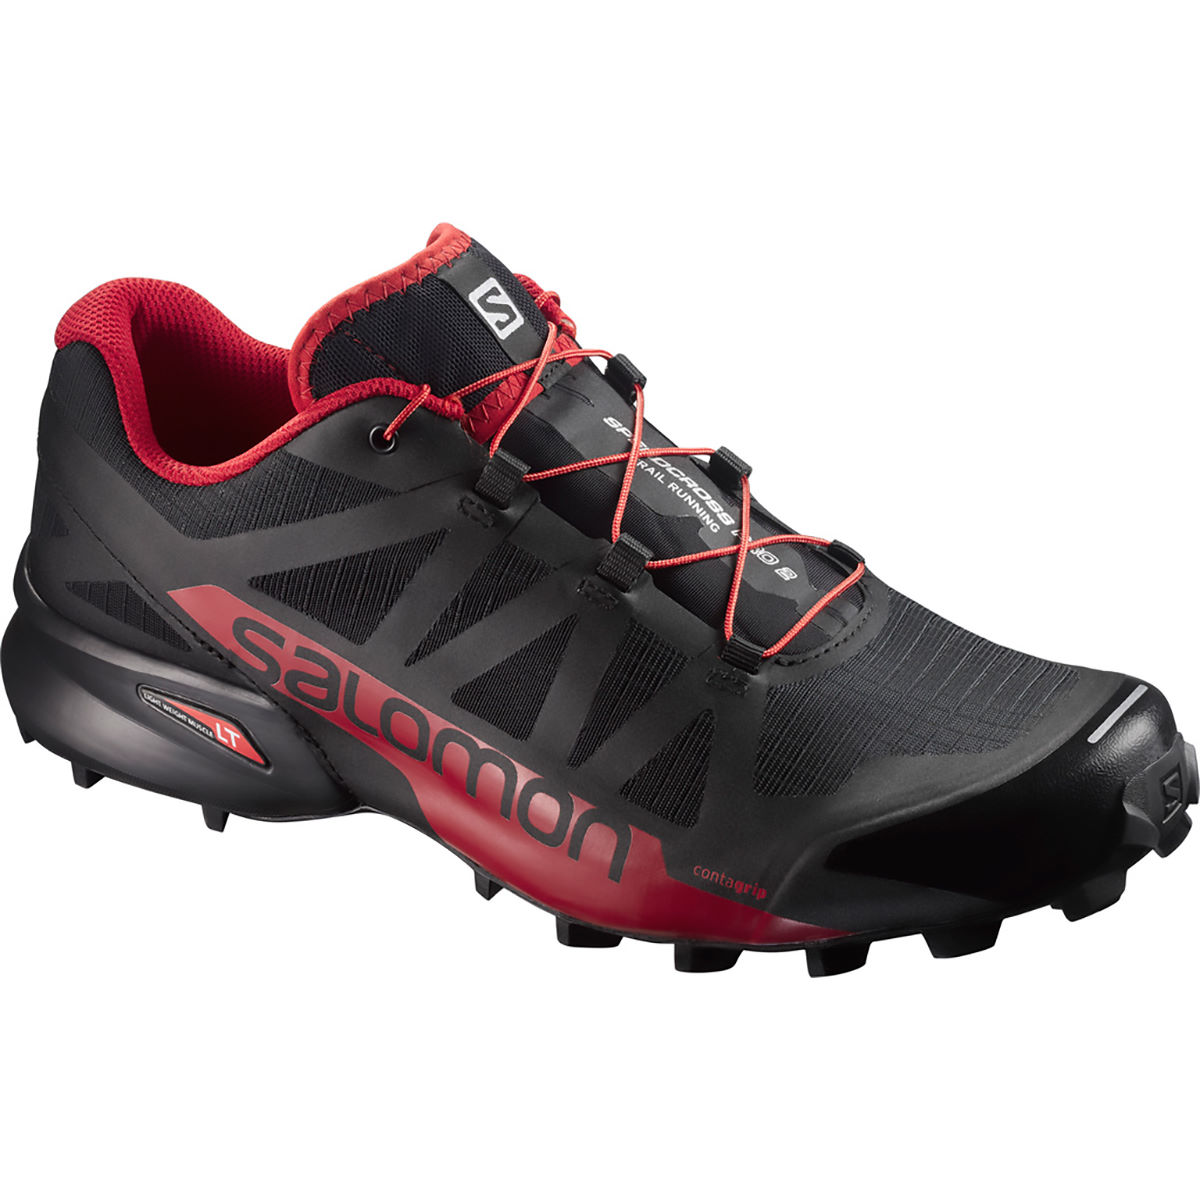 Zapatillas Salomon Speedcross Pro 2 - Zapatillas de trail running